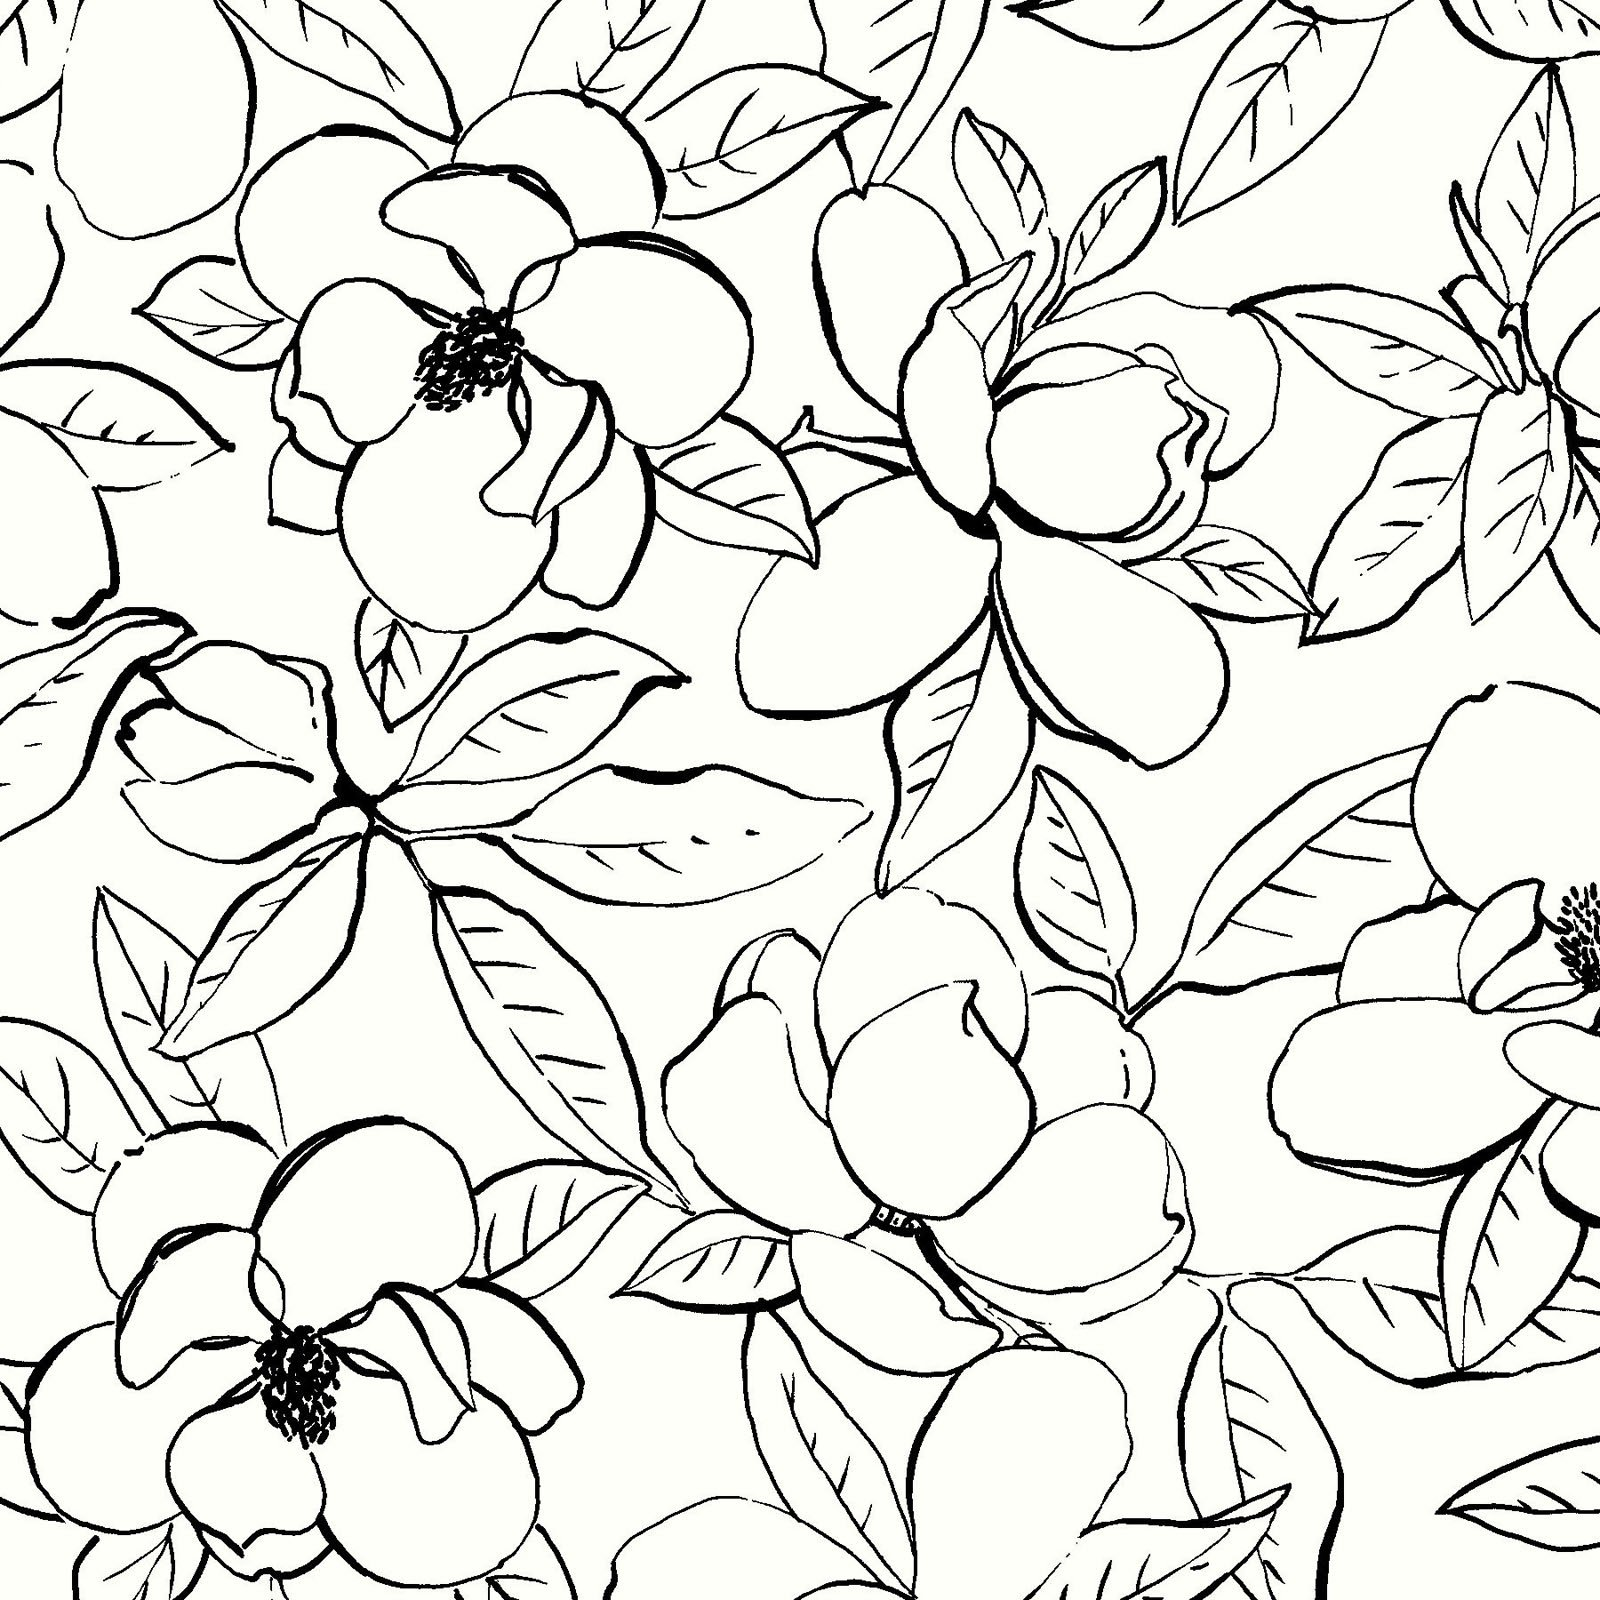 MAGN-4253 WK - MAGNOLIAS BY SANDY CLOUGH OUTLINES WHI/BLK